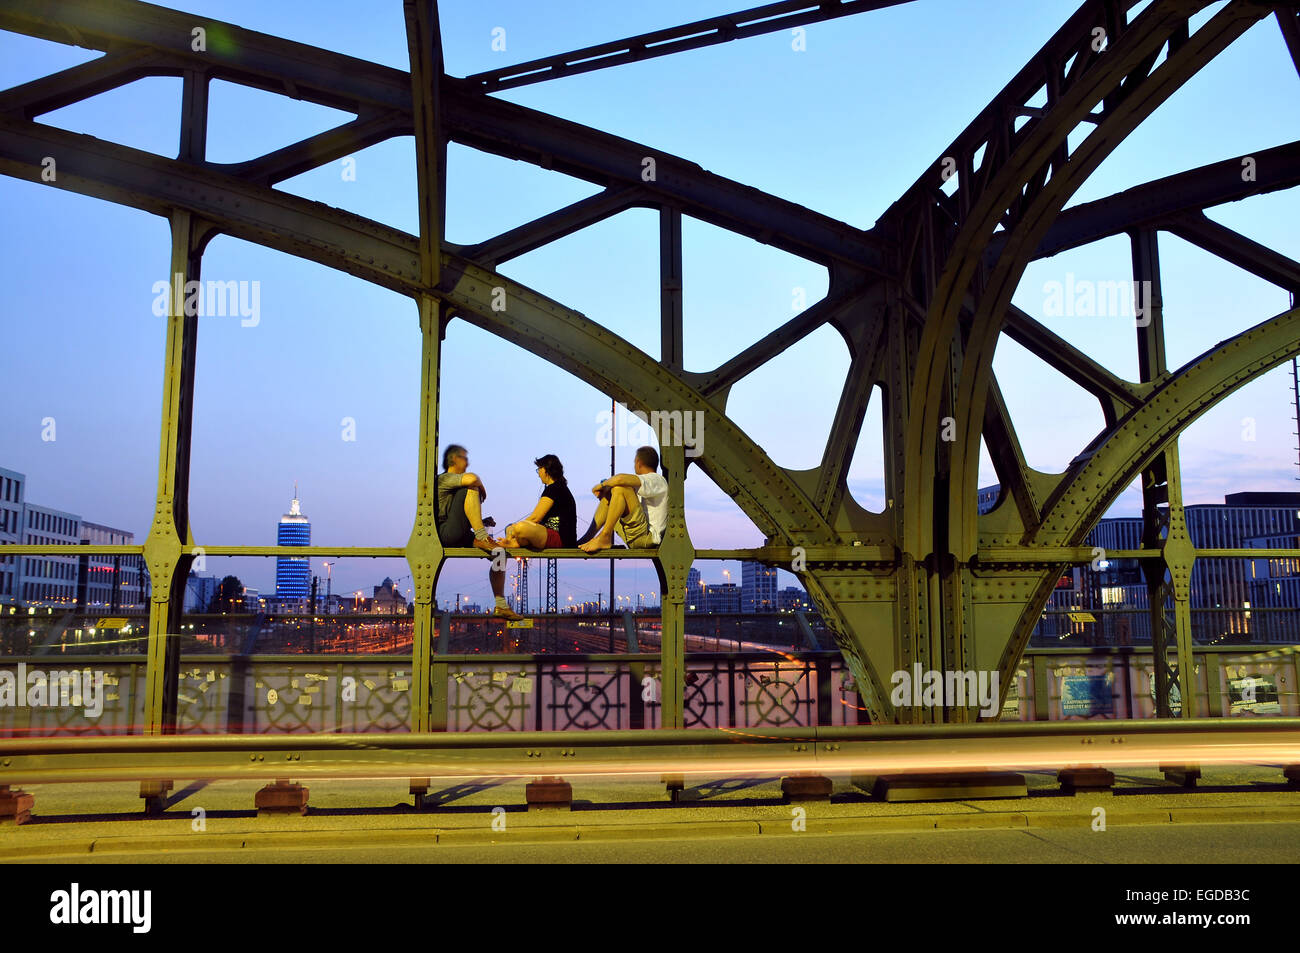 People sitting on the Hacker bridge in the evening, Munich, Bavaria, Germany - Stock Image